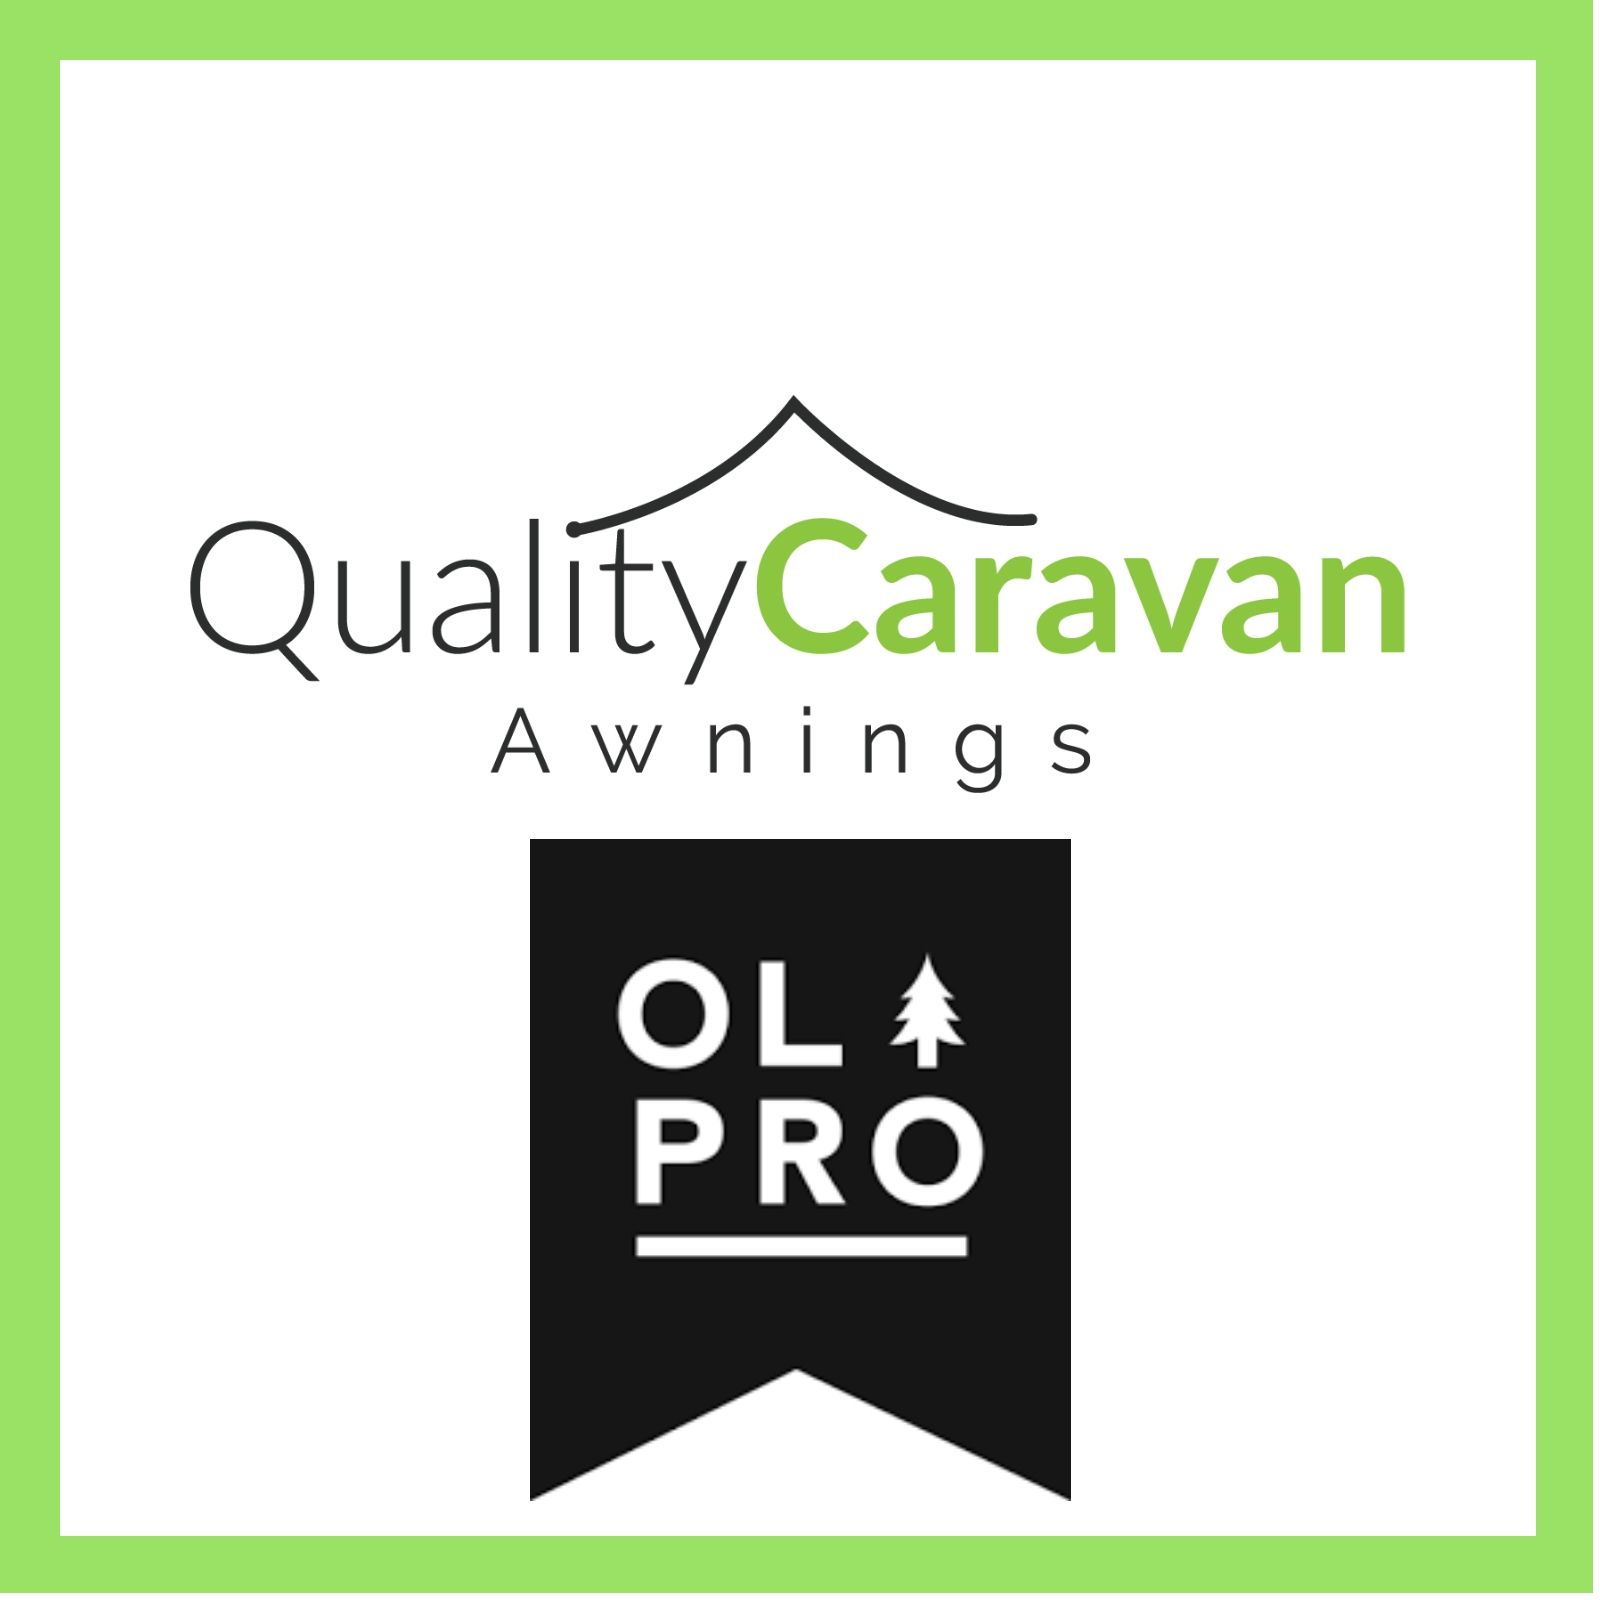 Browse The Olpro Range Of High Quality Inflatable Drive Aways For Campervans And Motorhomes We Have What You Are Looking For At The B Camper Van Caravan Awnings Motorhome